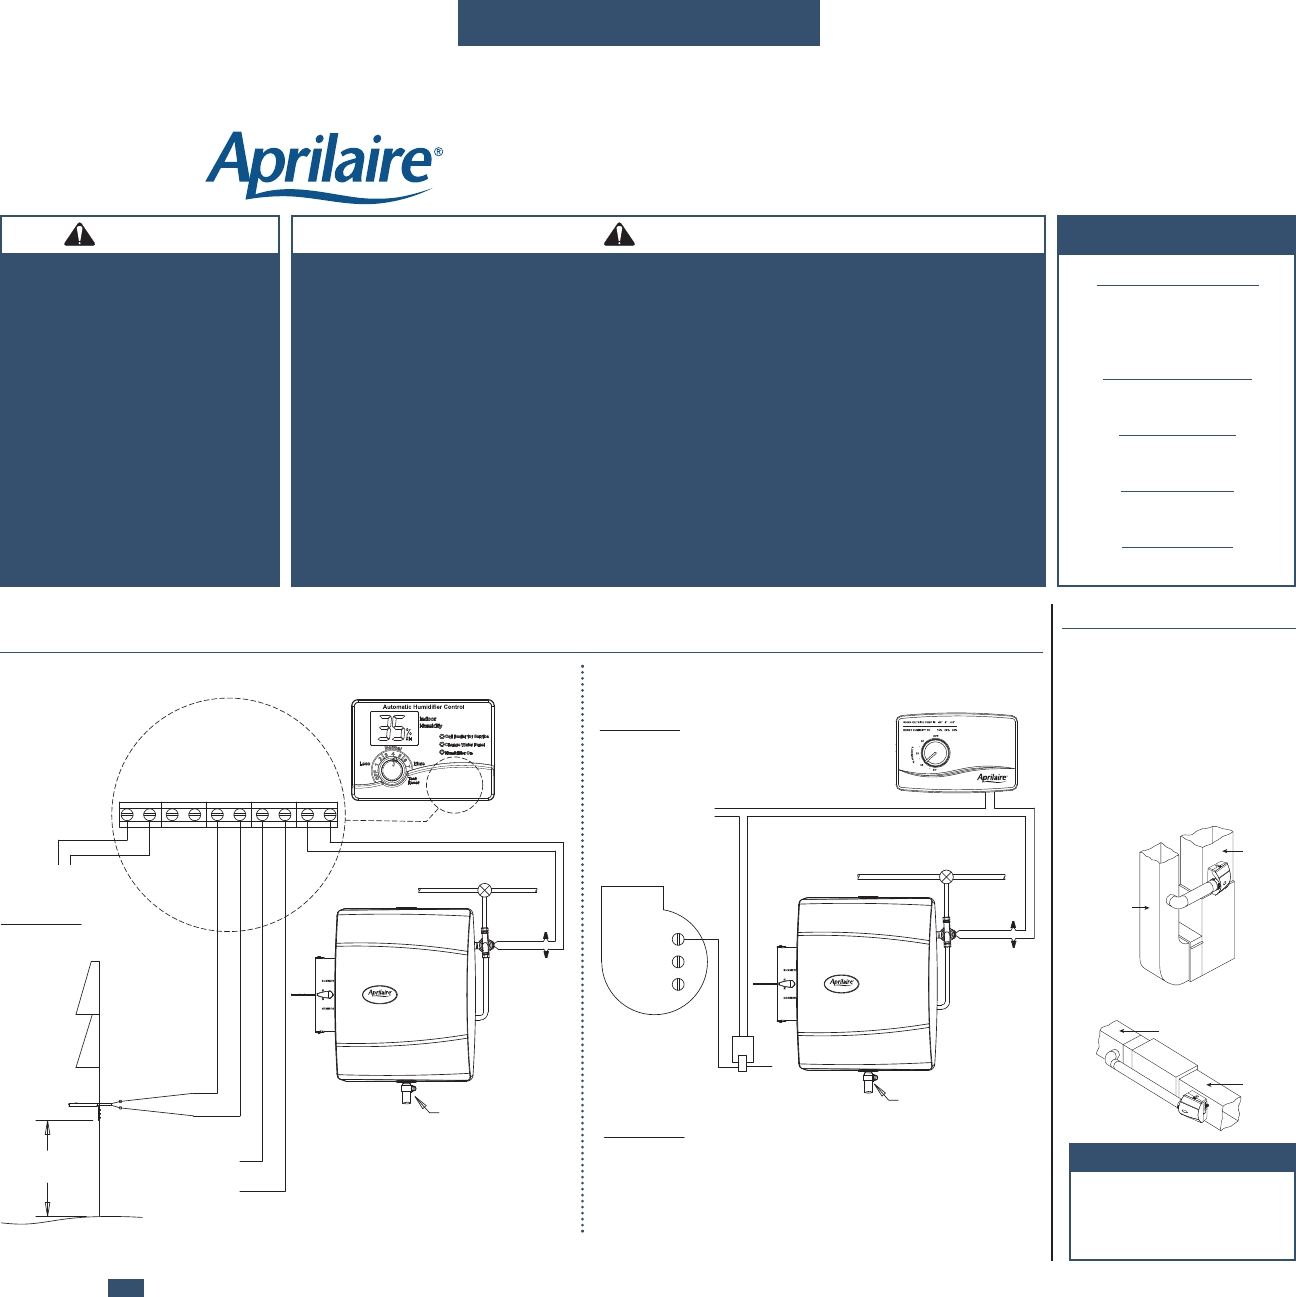 Diagram Aprilaire Model 600 Wiring Diagram